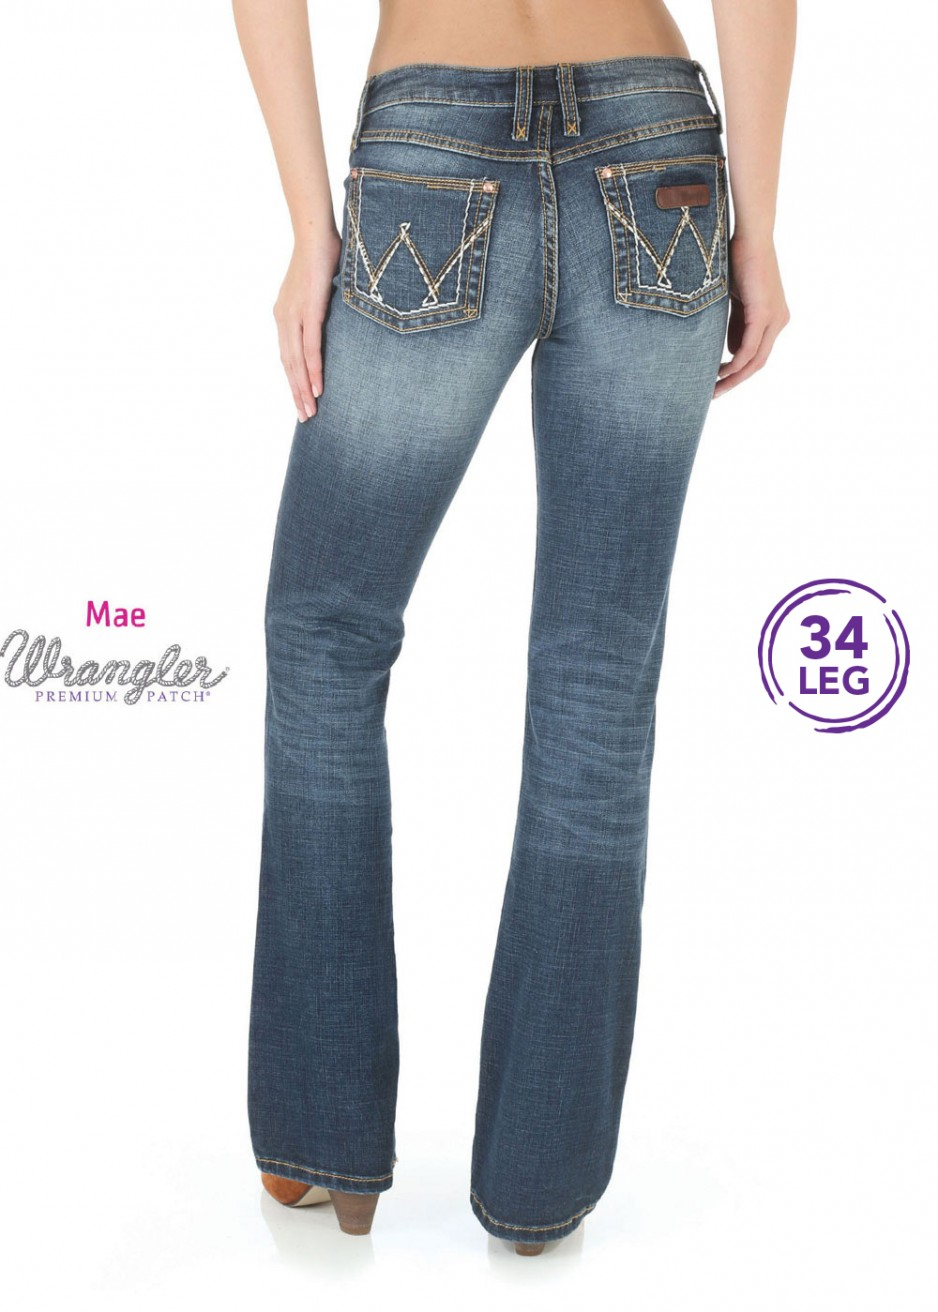 WOMENS P/PATCH SITS ABOVE HIP JEAN - MAE